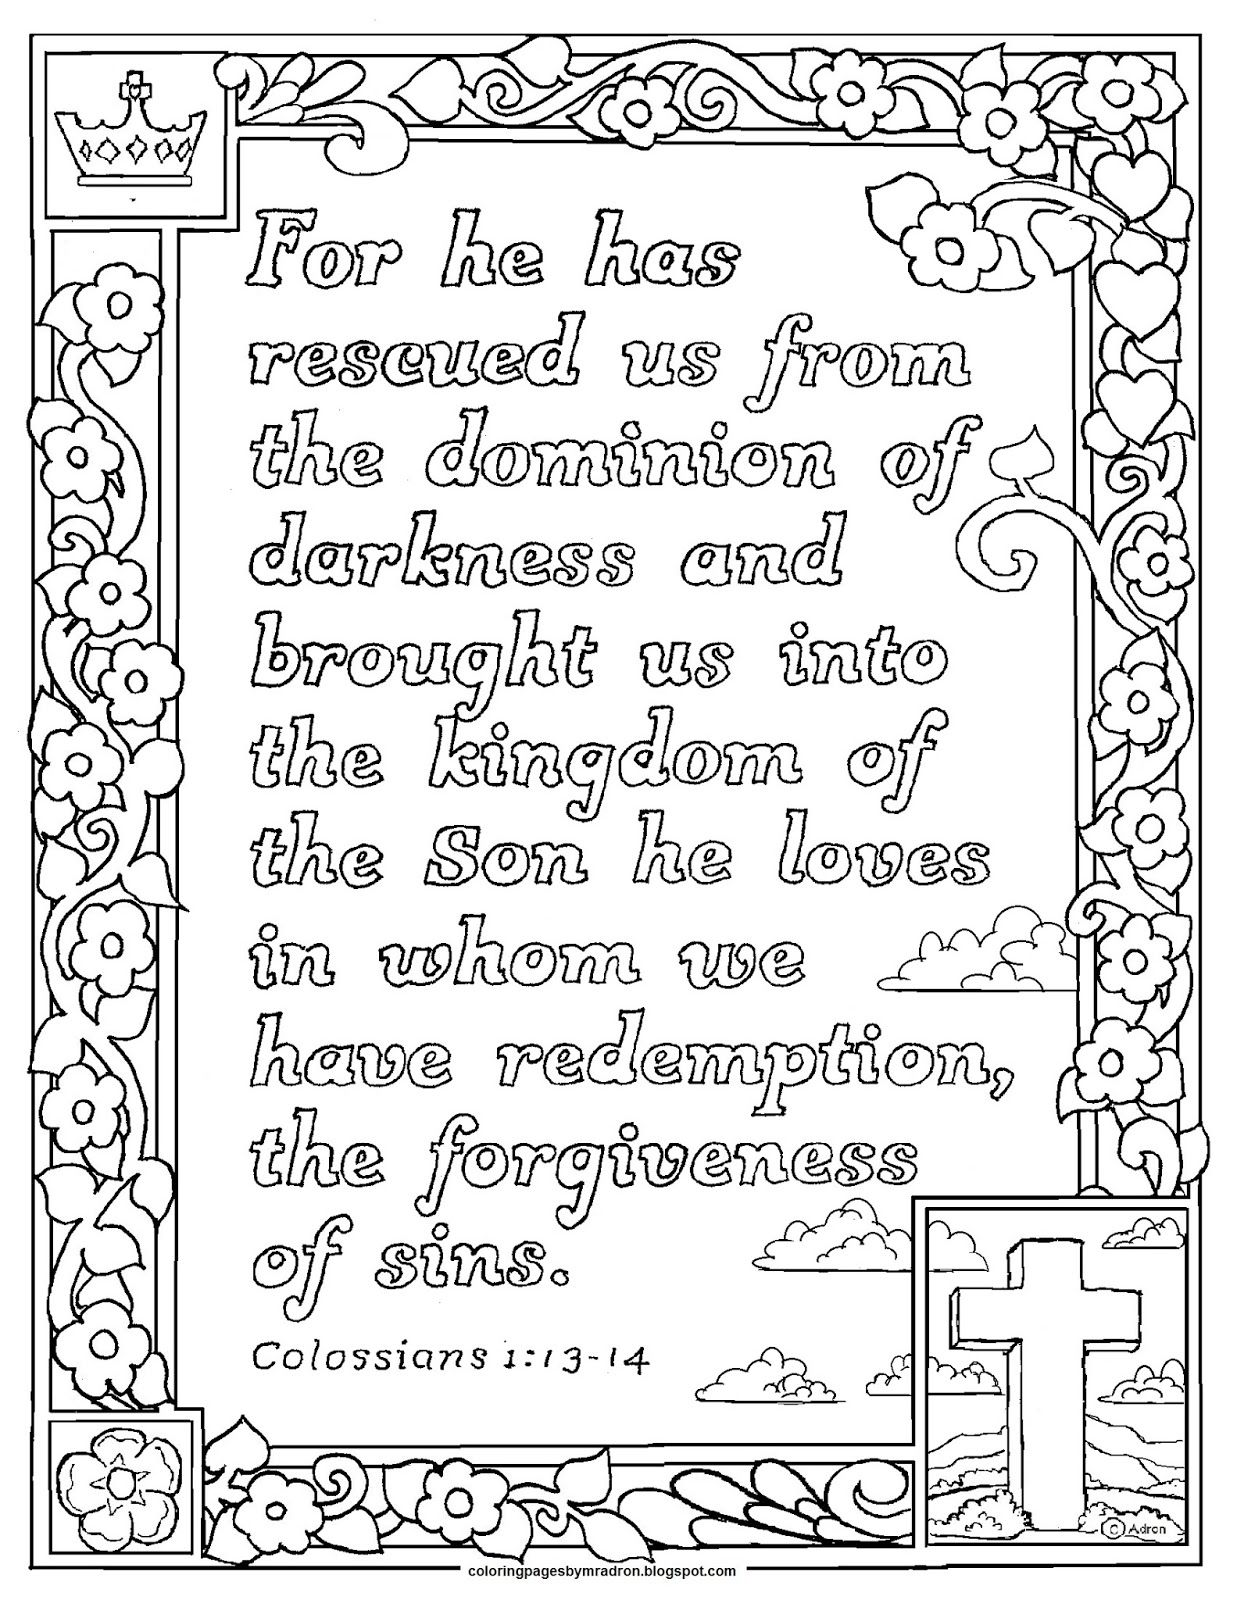 Colossians 1 13 14 Jpg 1 237 1 600 Pixels Bible Coloring Pages